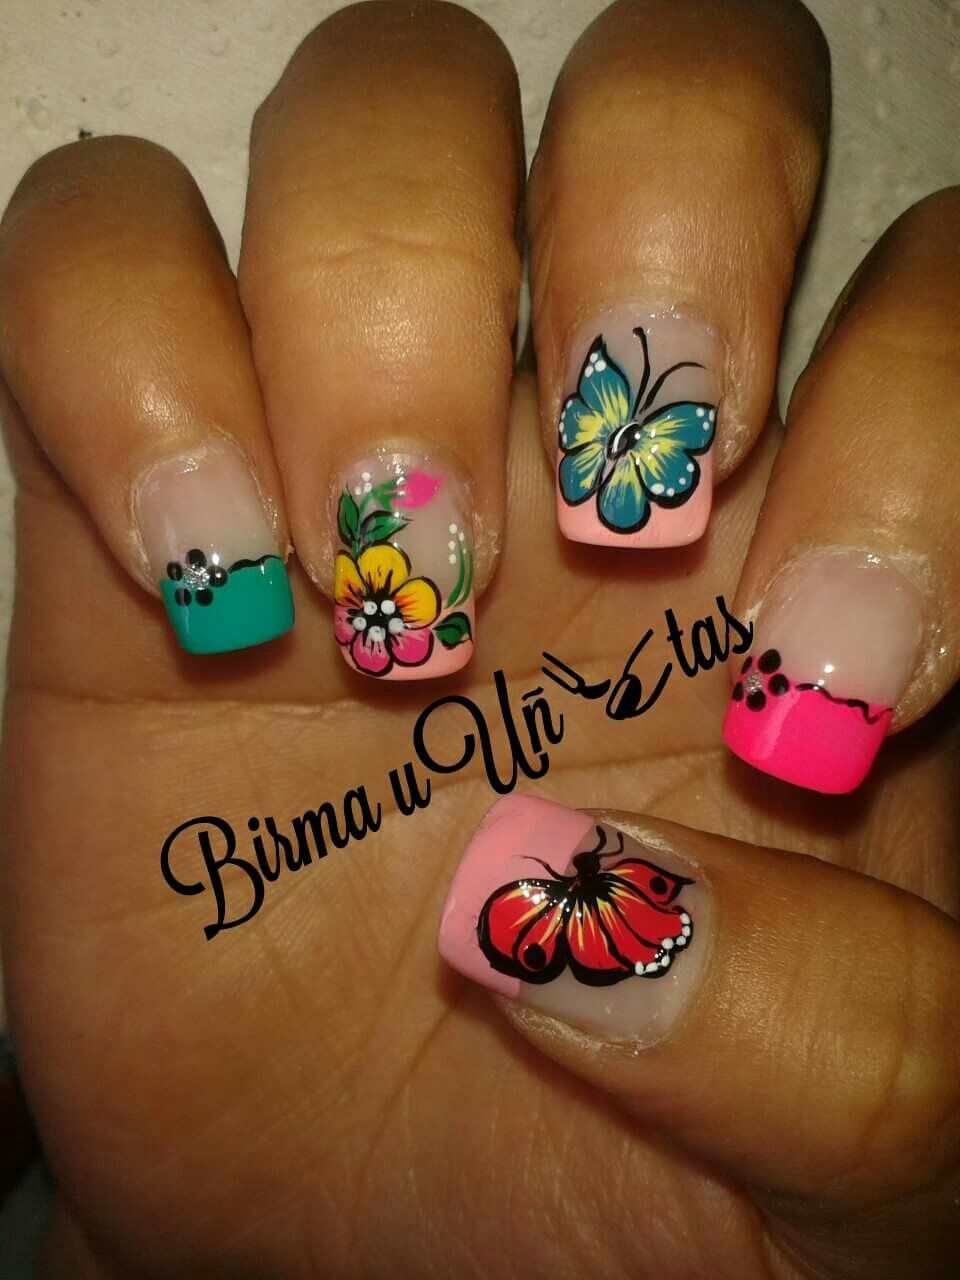 Pin by brenda rodas on bbi pinterest jasmine wicked nail art nail bling nails awesome gowns amor pedicures prinsesfo Image collections